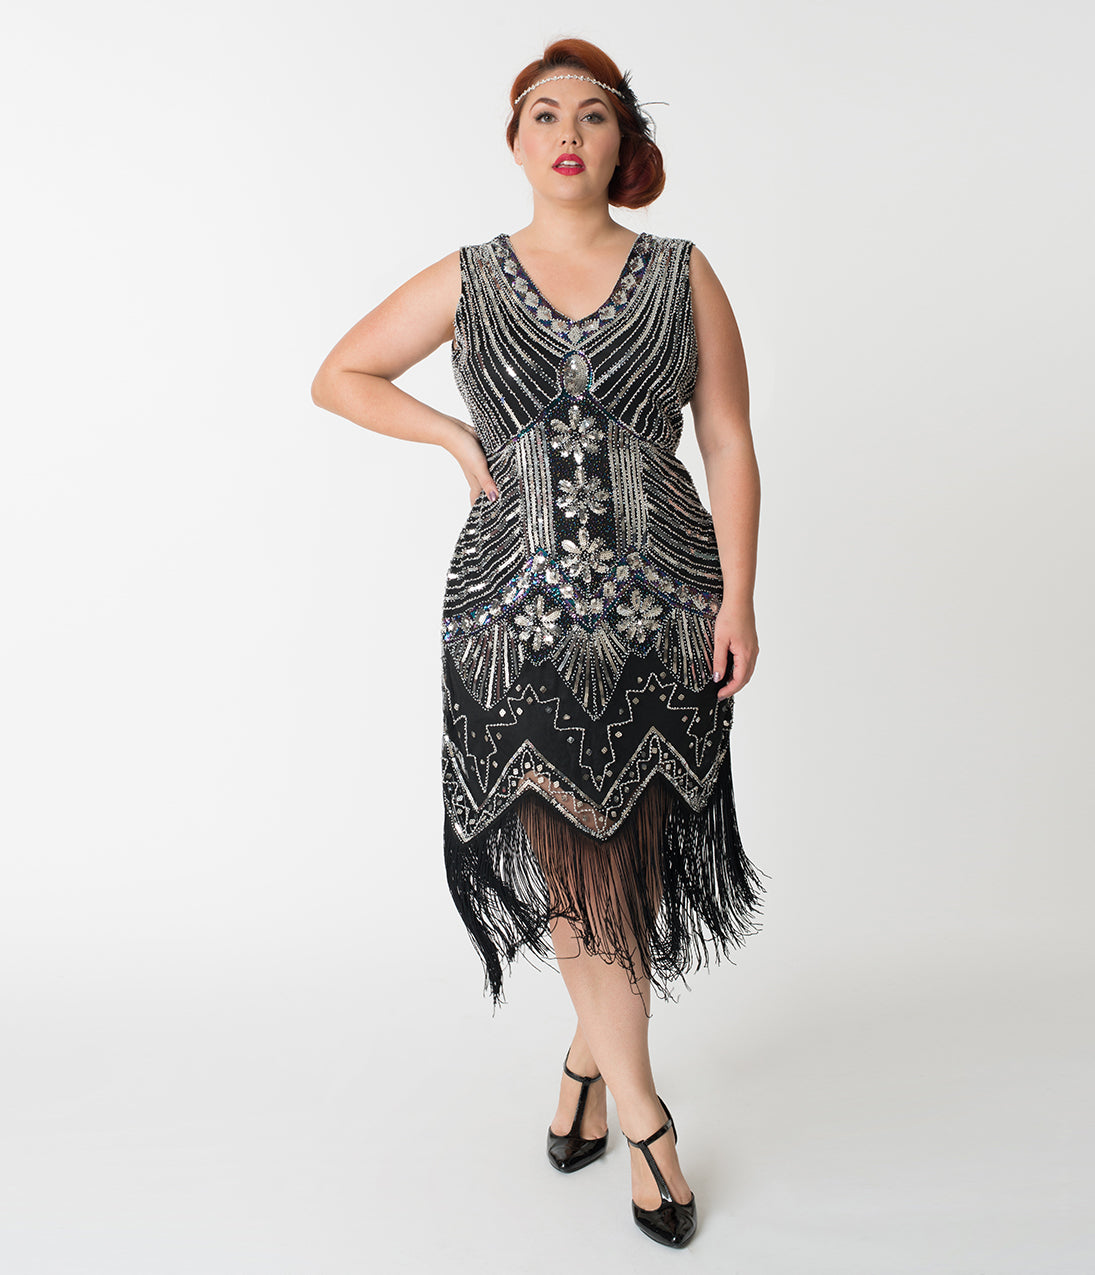 1920s Plus Size Flapper Dresses, Gatsby Dresses, Flapper Costumes Unique Vintage Plus Size 1920S Deco Silver  Black Veronique Fringe Flapper Dress $98.00 AT vintagedancer.com